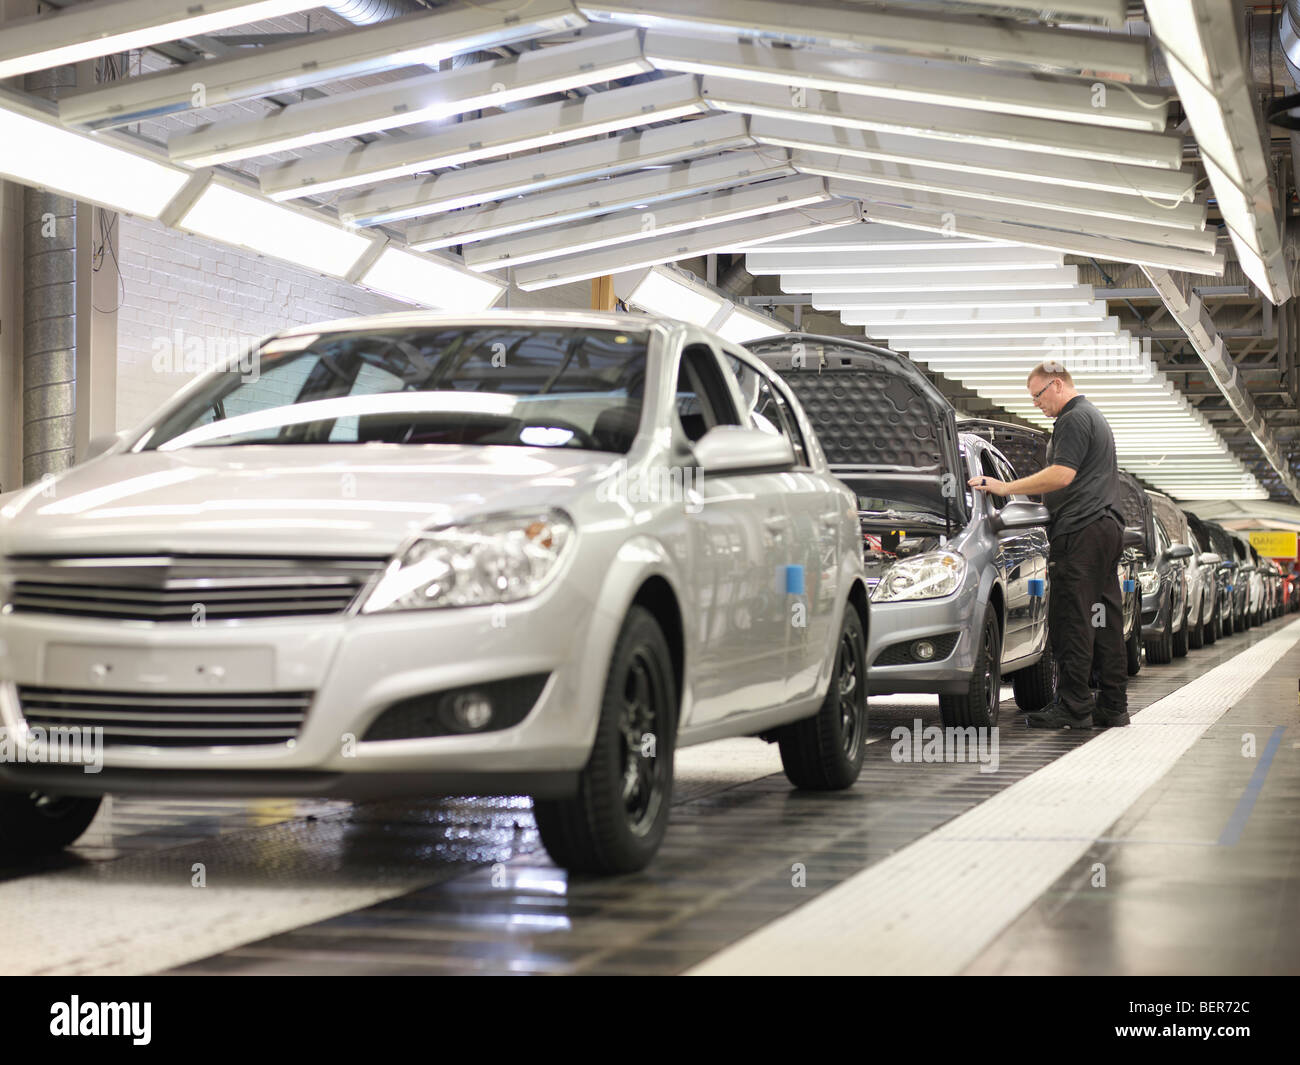 Worker Checking Cars On Production Line - Stock Image